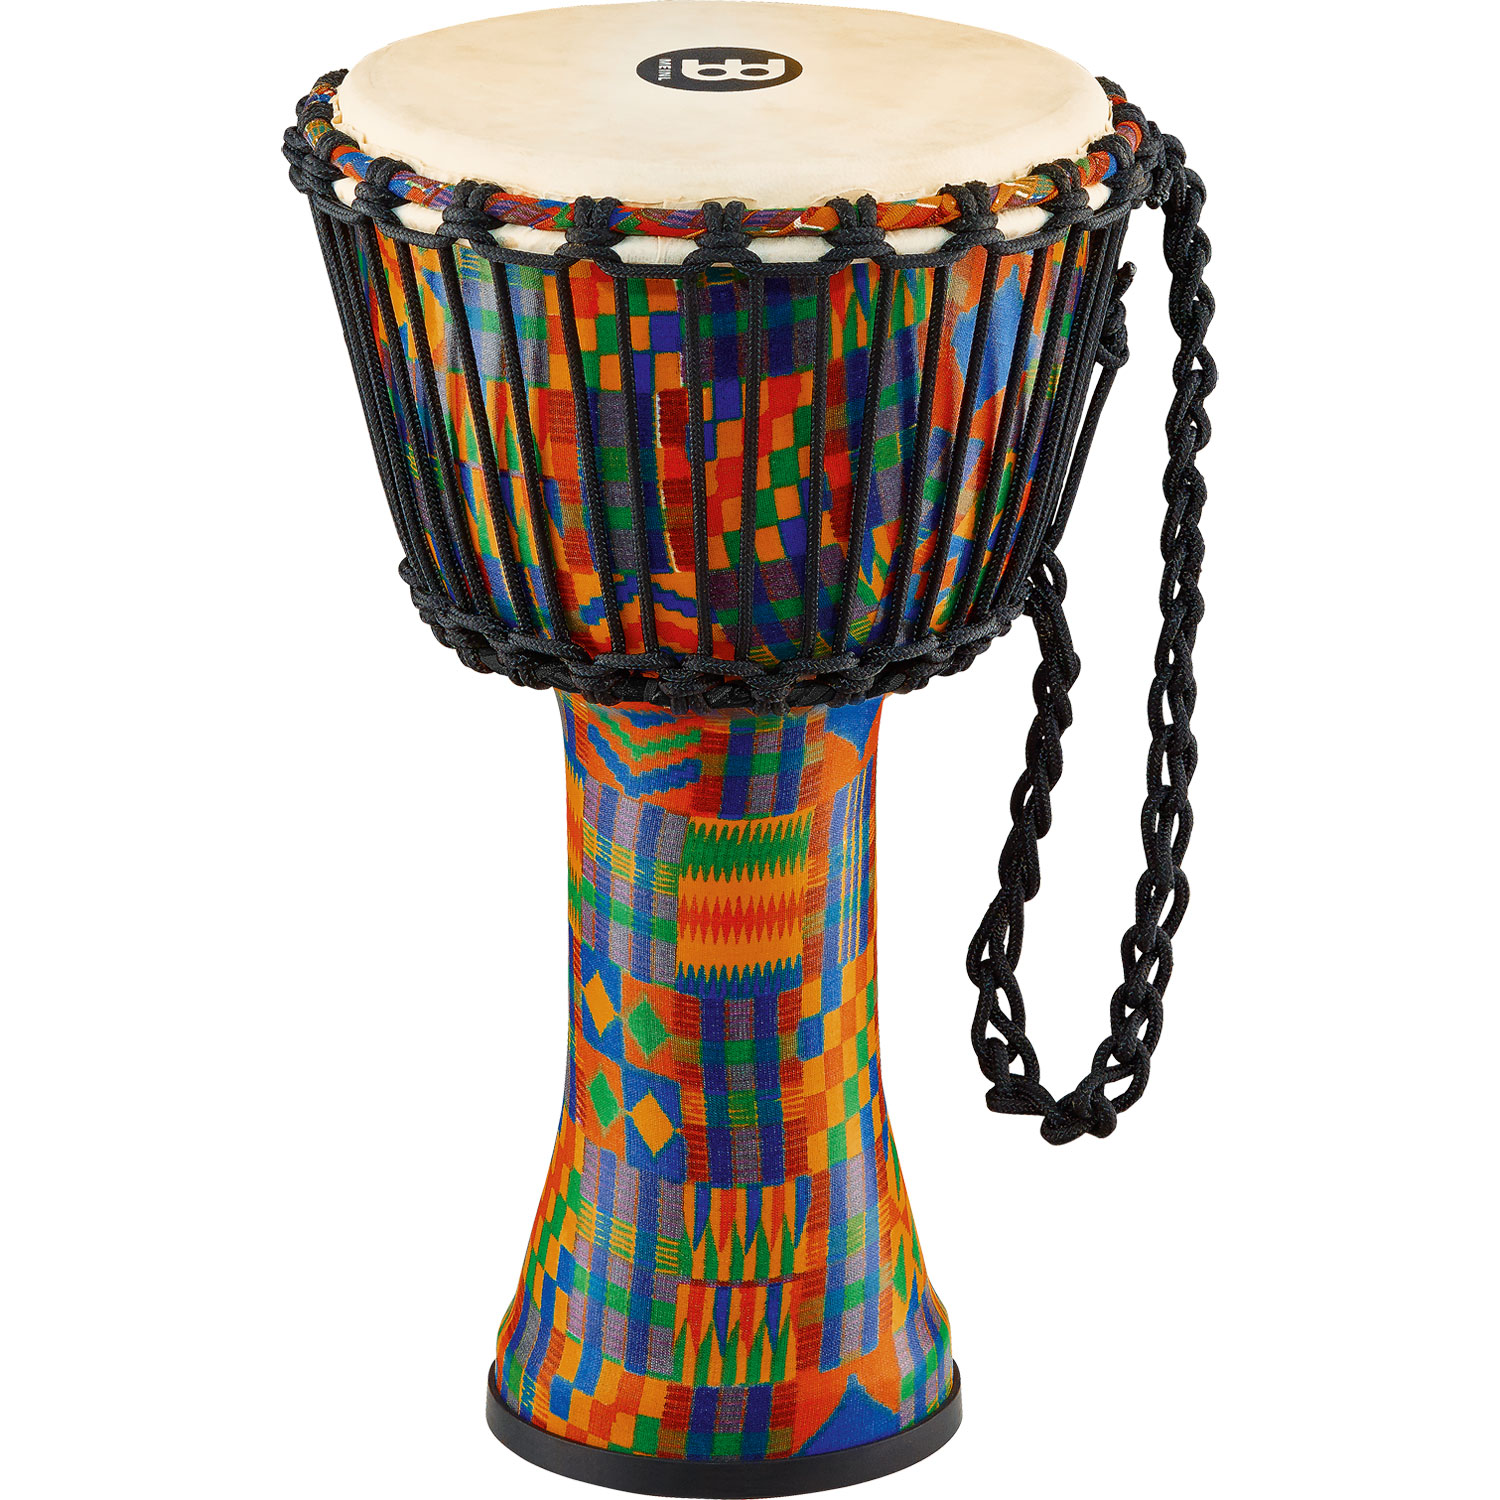 "Meinl 8"" Rope-Tuned Travel Djembe in Kenyan Quilt with Natural Head"